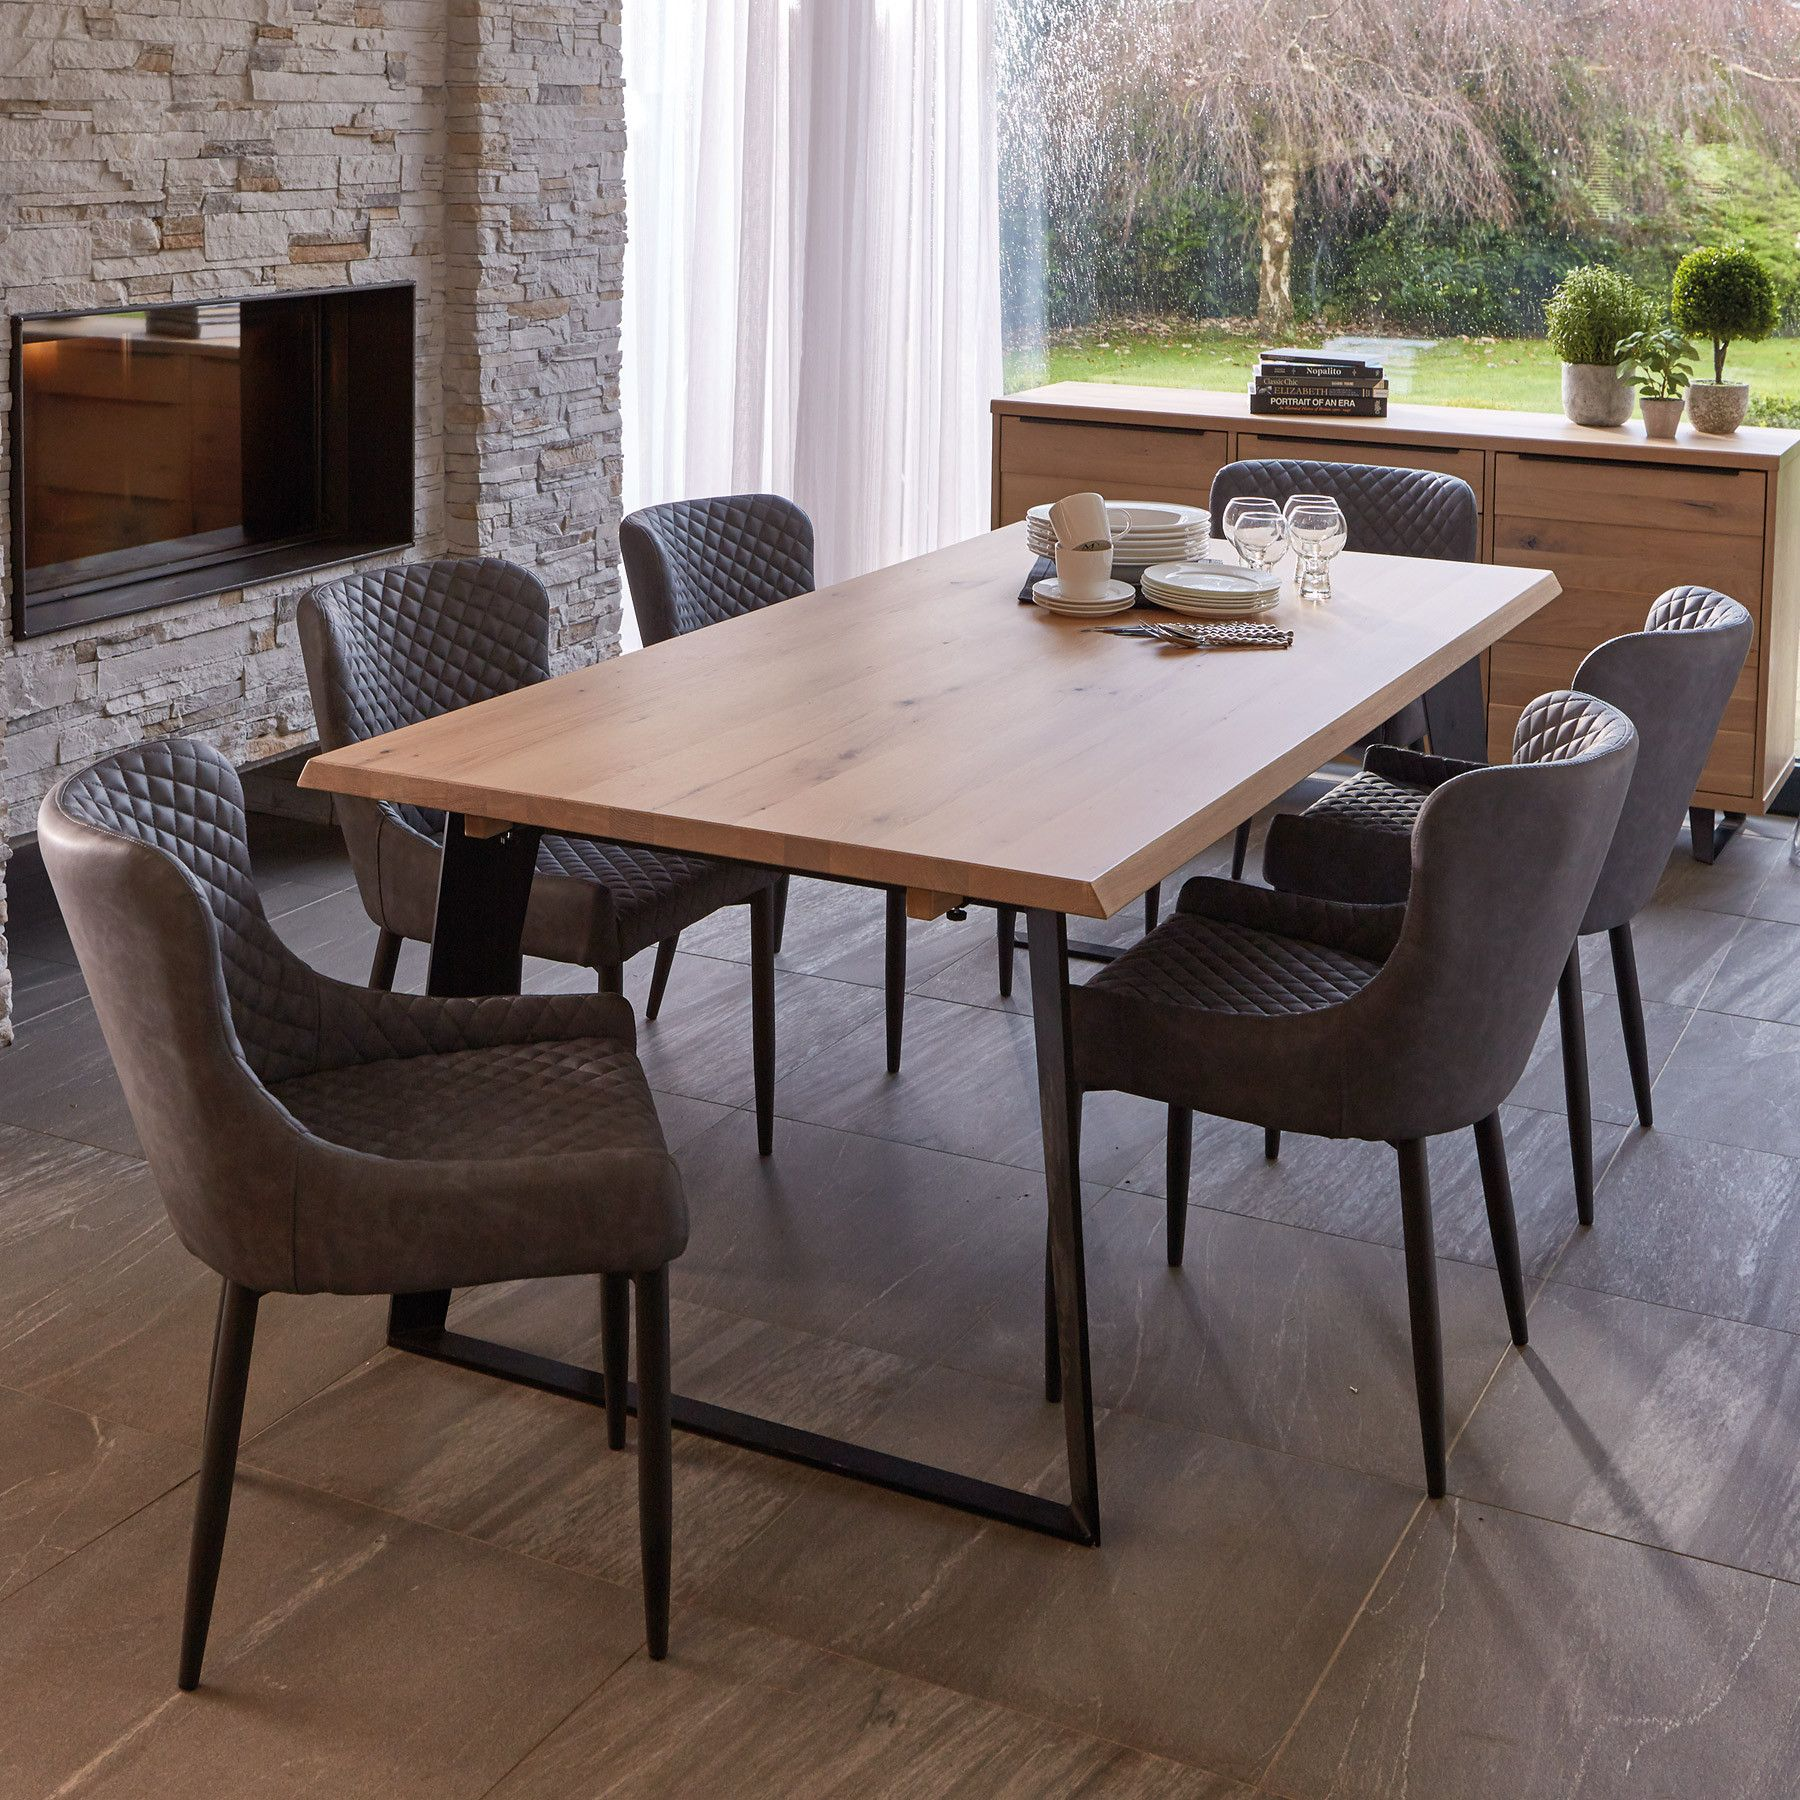 Weldon Dining Table Extension Leaf 6 Toby Brown Dining Chairs